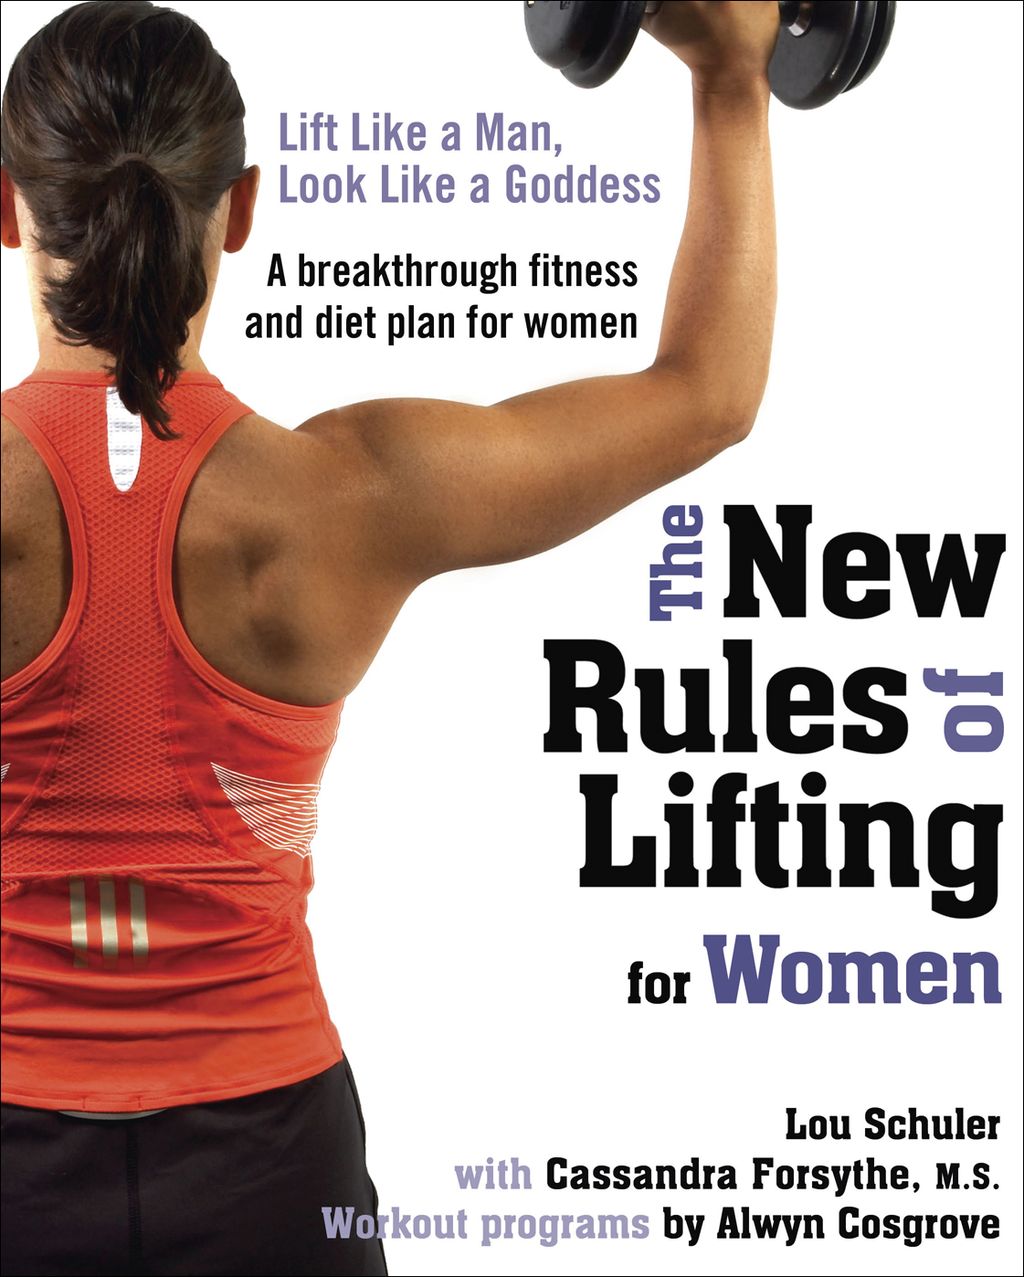 The New Rules of Lifting for Women By: Cassandra Forsythe,  M.S.,Lou Schuler